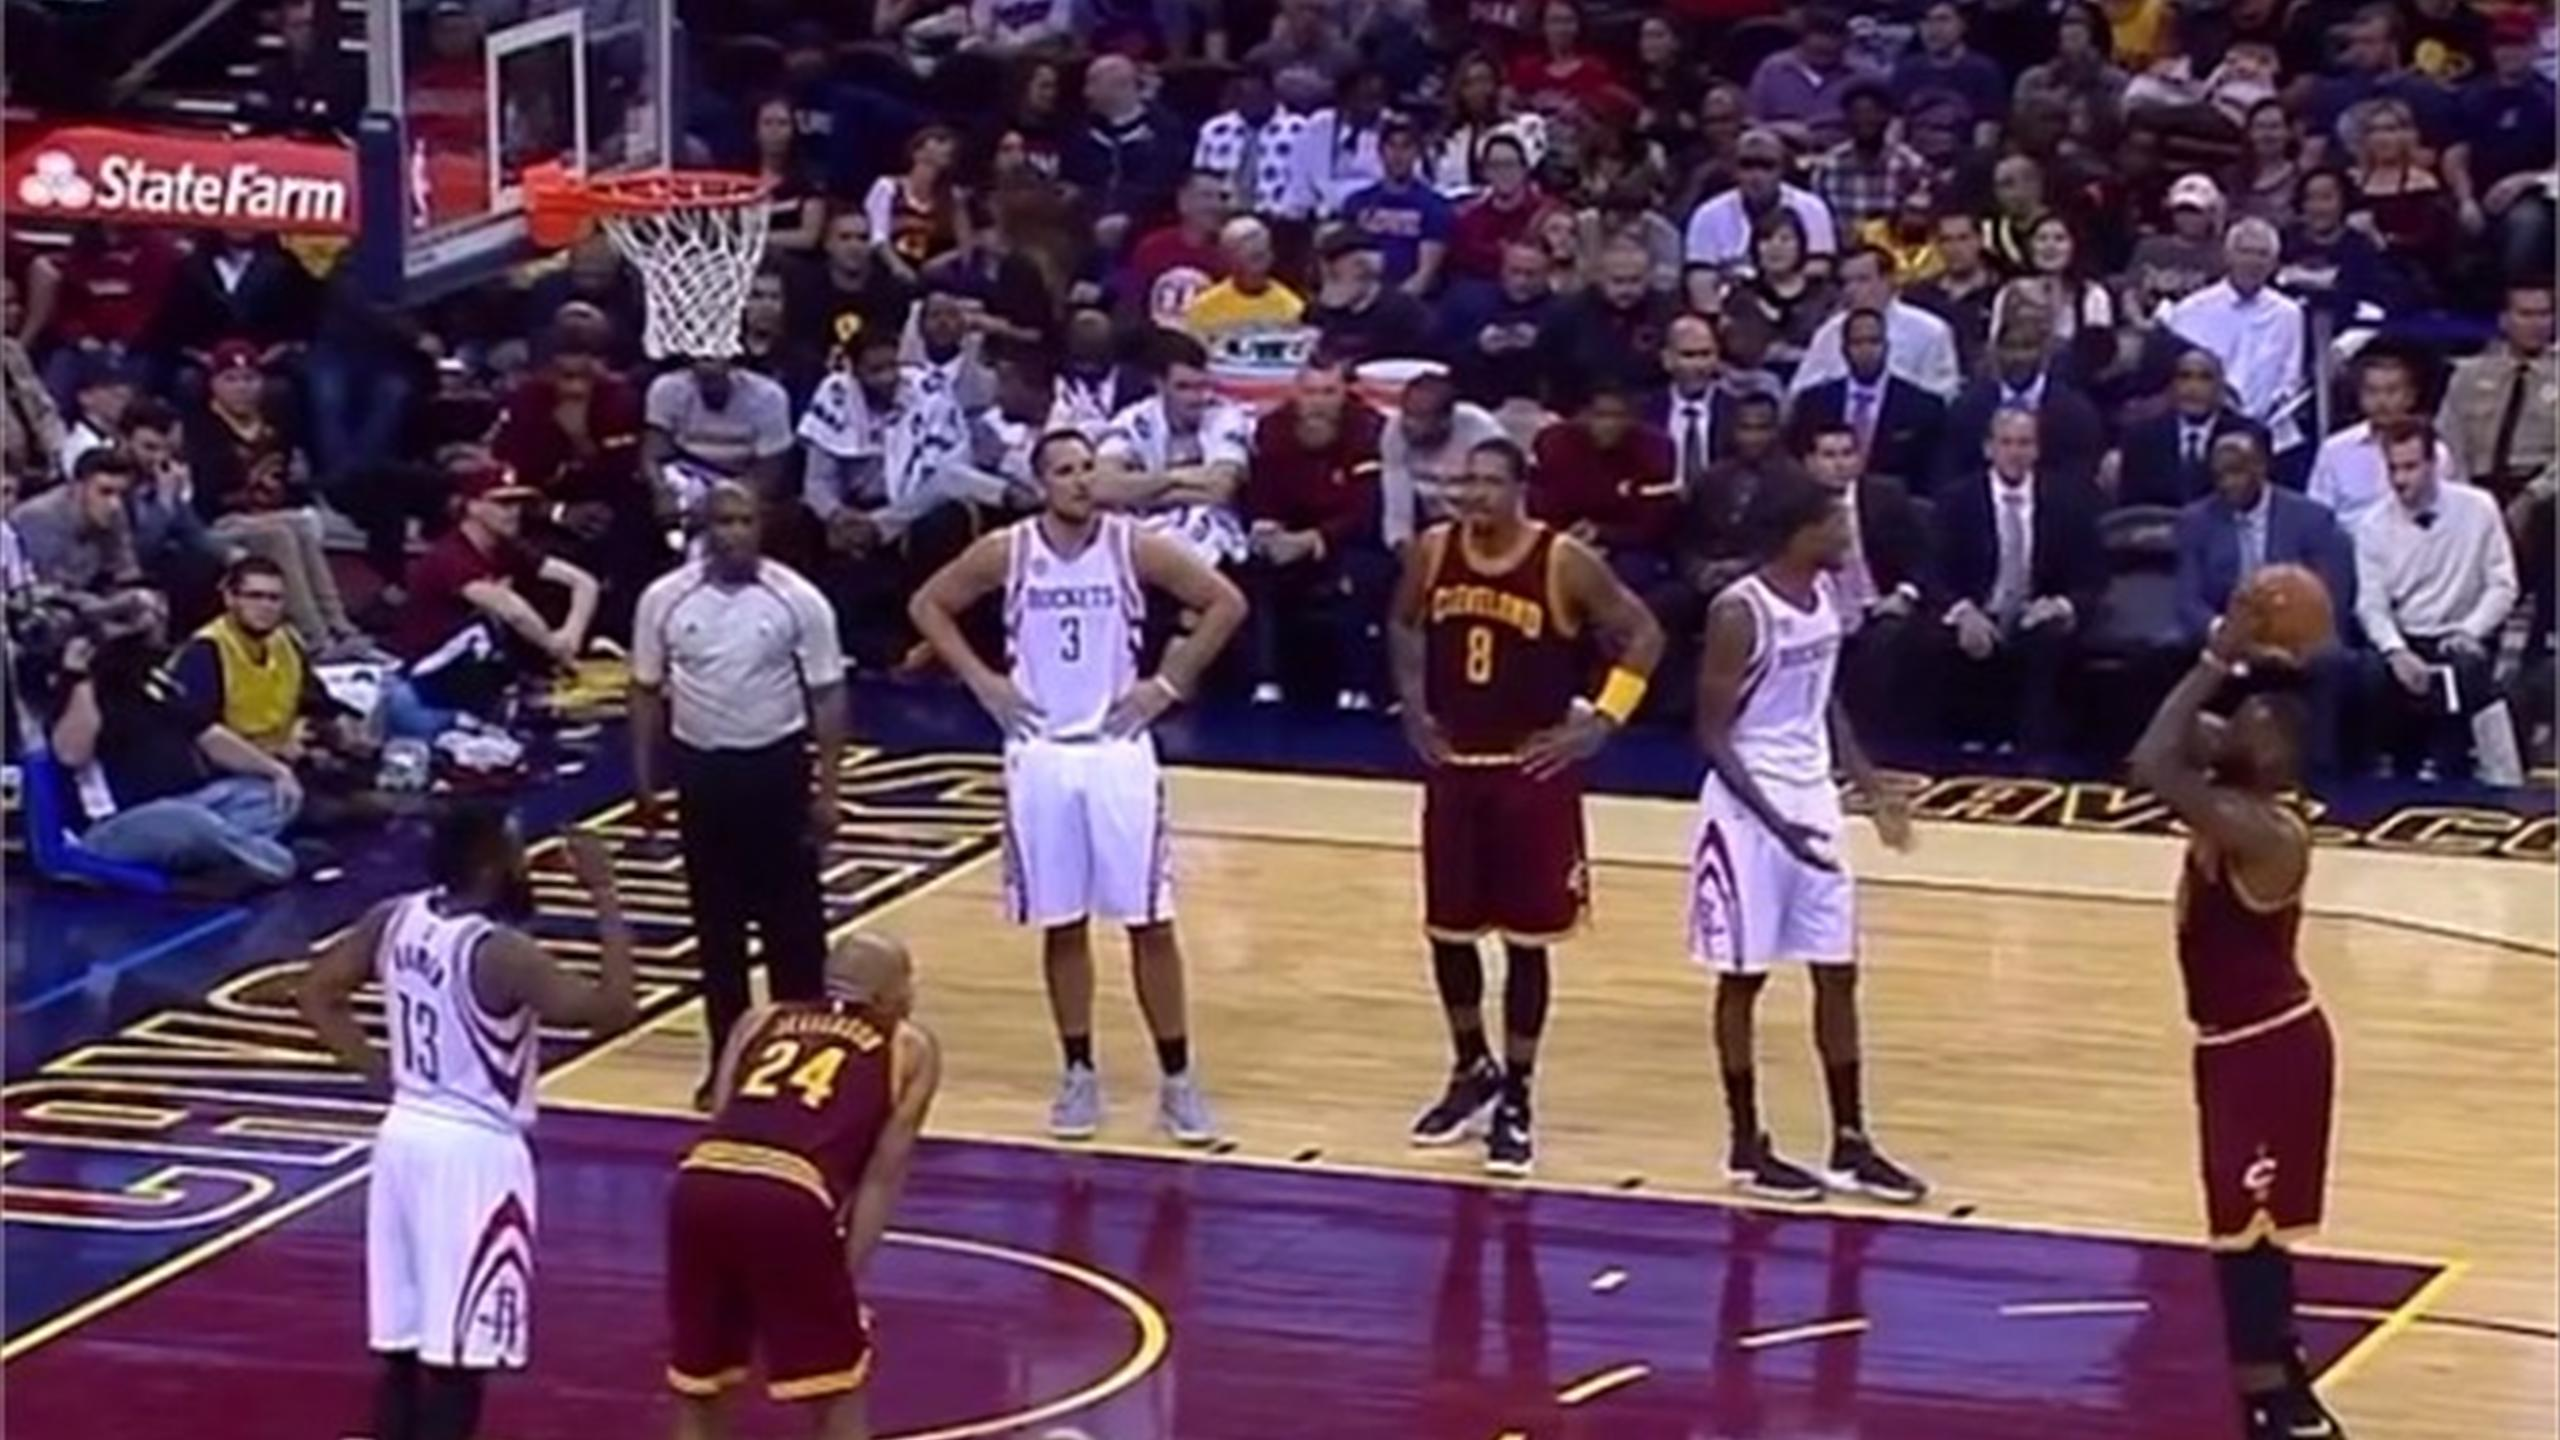 Le Bron James completely fluffs free throw leaving fans stunned (Twitter)